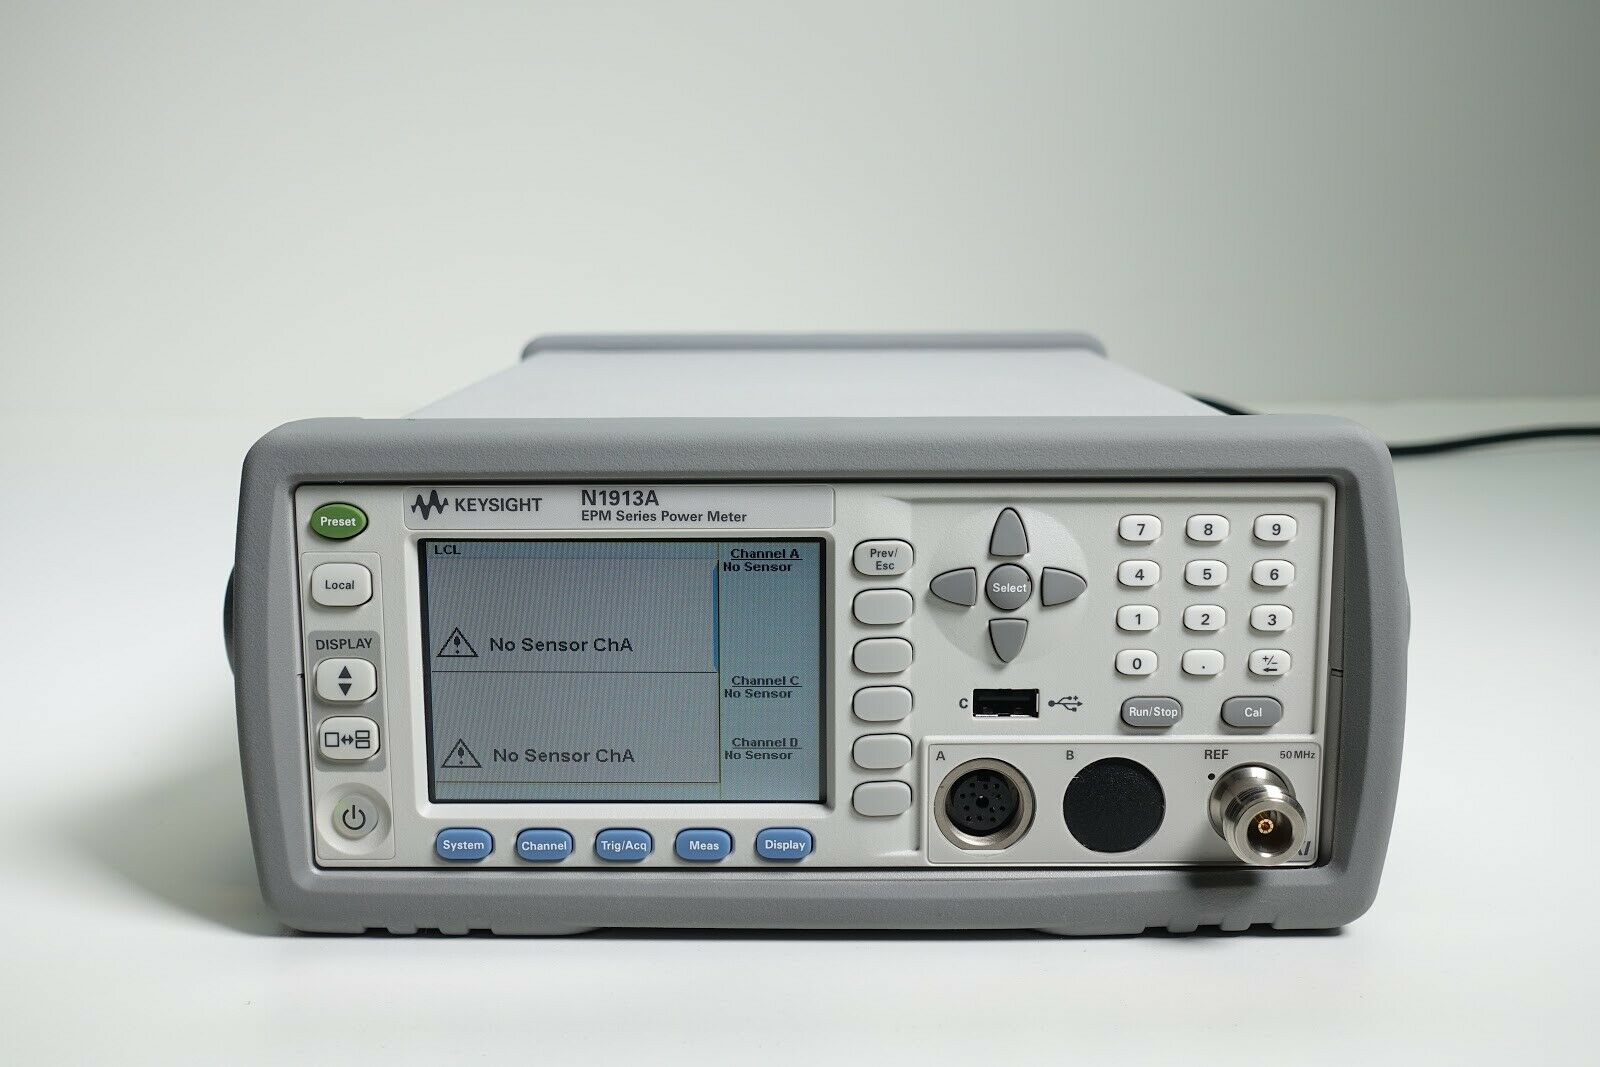 Keysight N1913A Power Meter / EPM Series / 9 kHz to 110 GHz / Single Channel